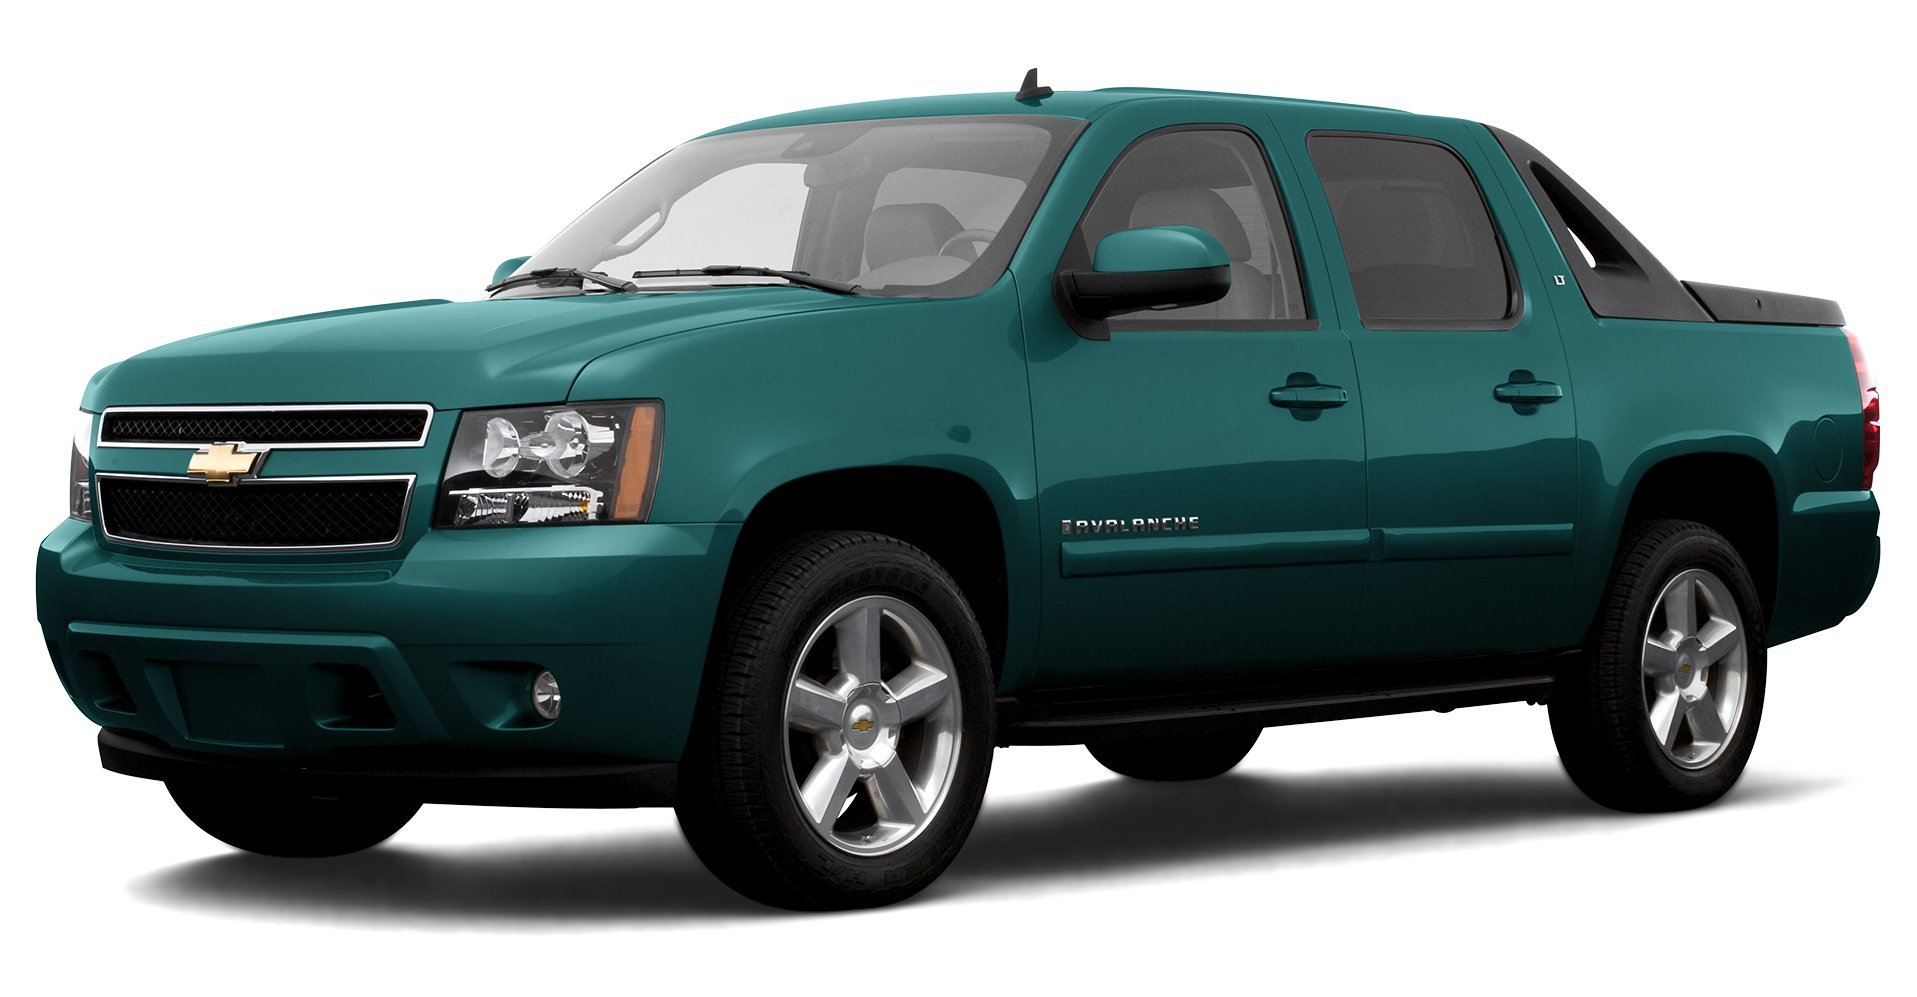 2007 chevrolet avalanche reviews images and. Black Bedroom Furniture Sets. Home Design Ideas